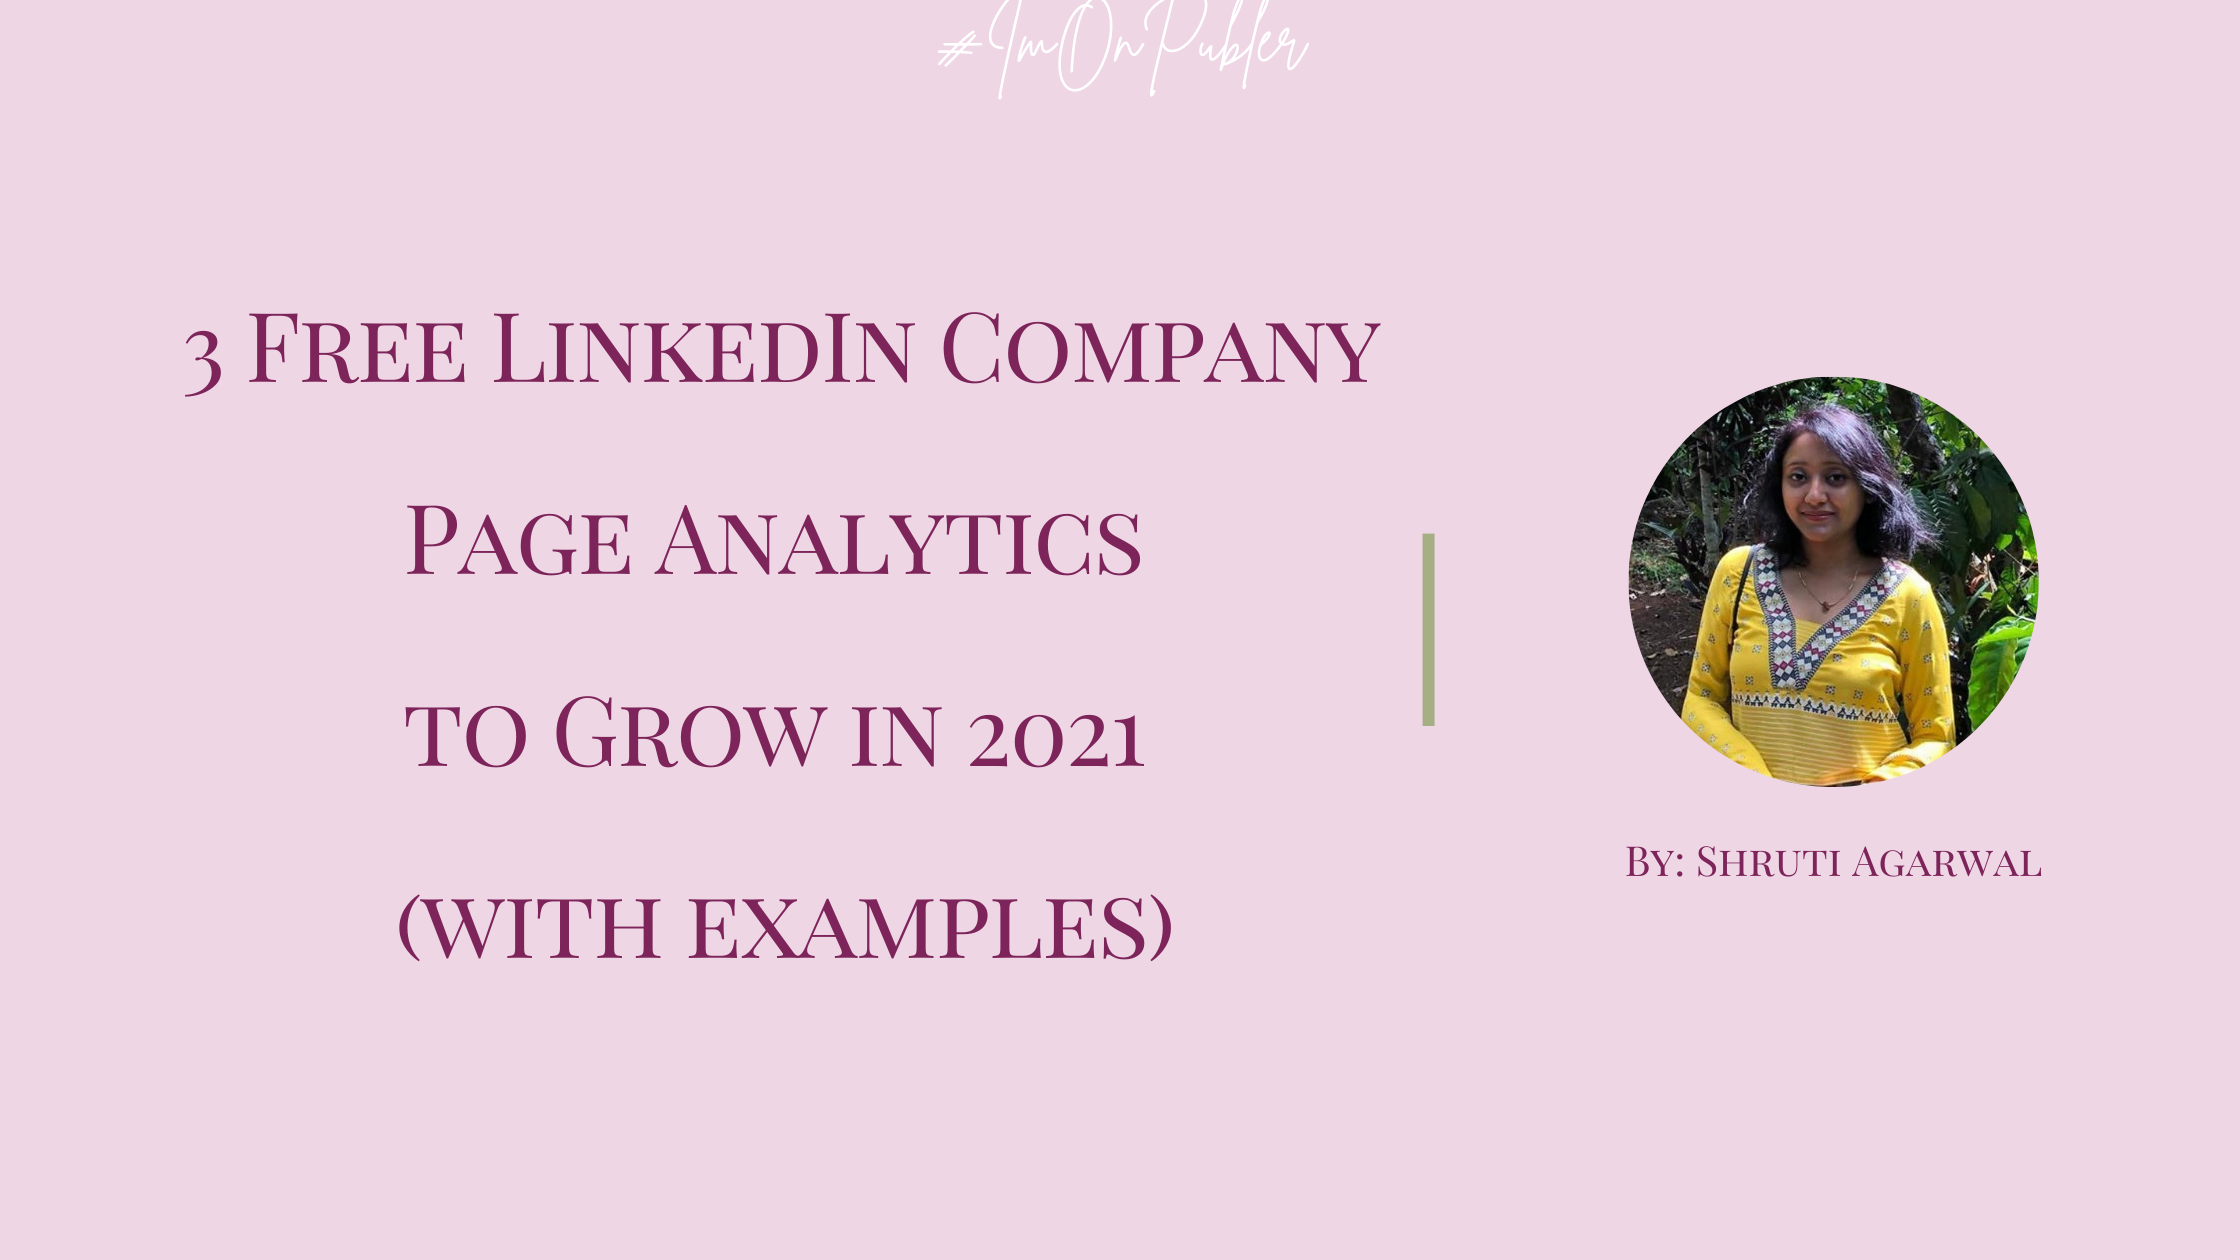 3 Free LinkedIn Company Page Analytics to Grow in 2021 (with examples) by Shruti Agarwal